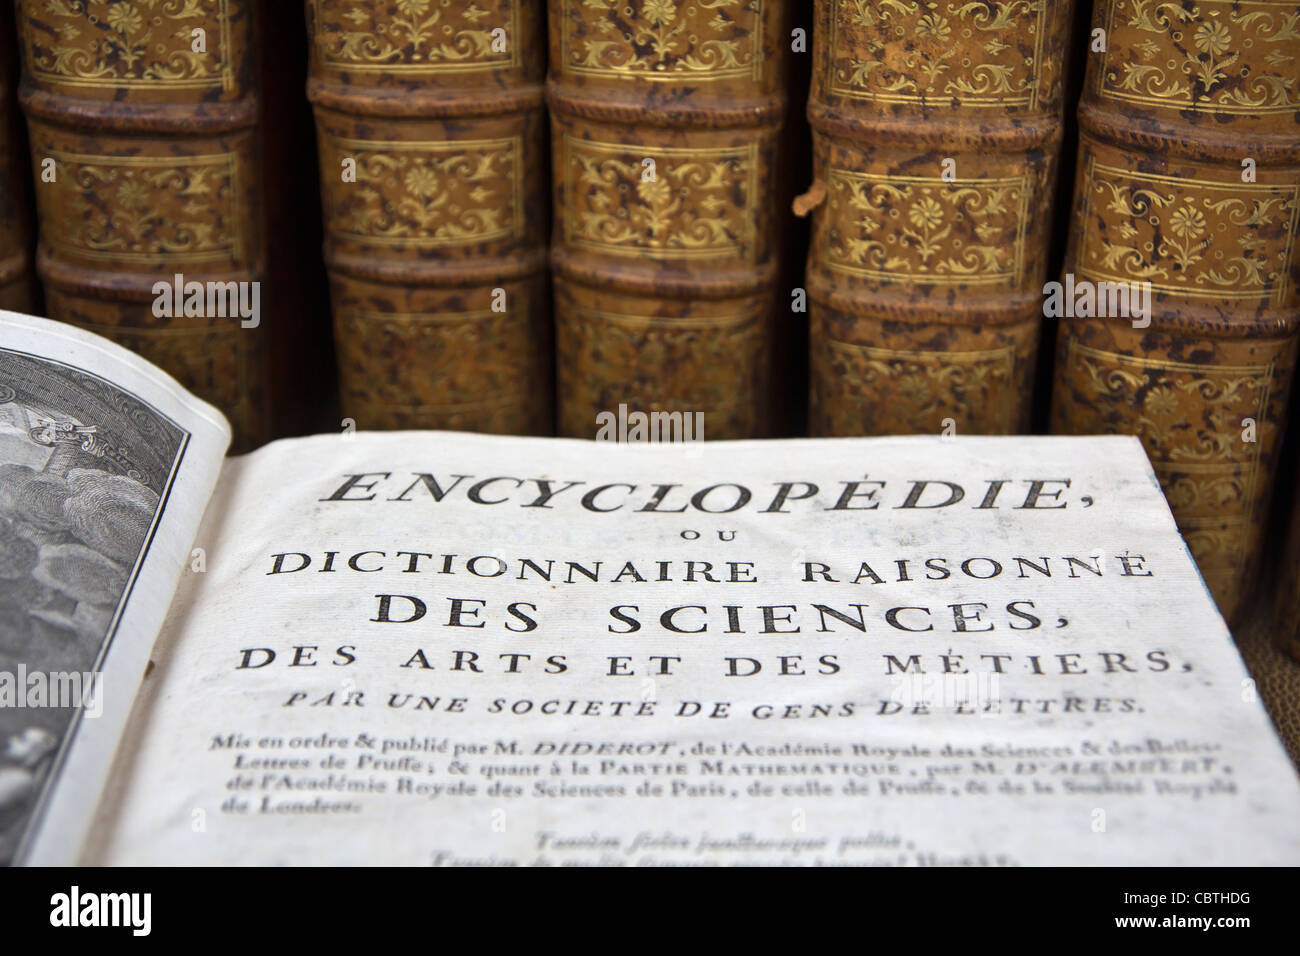 French encyclopaedia - Stock Image